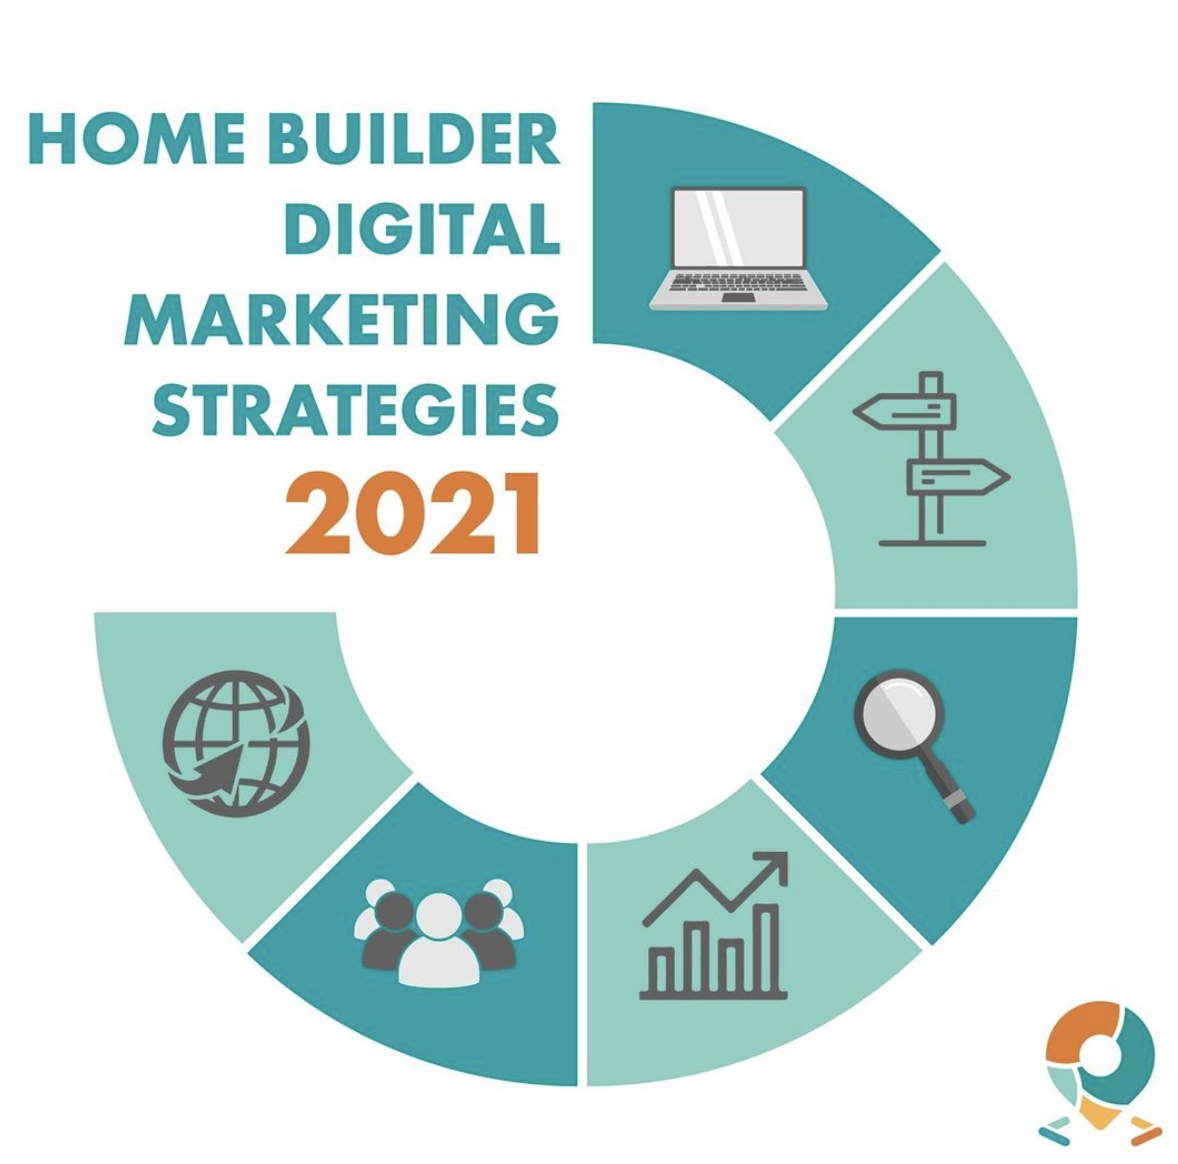 5 Recommendations for Home Builder's 2021 Marketing Strategy